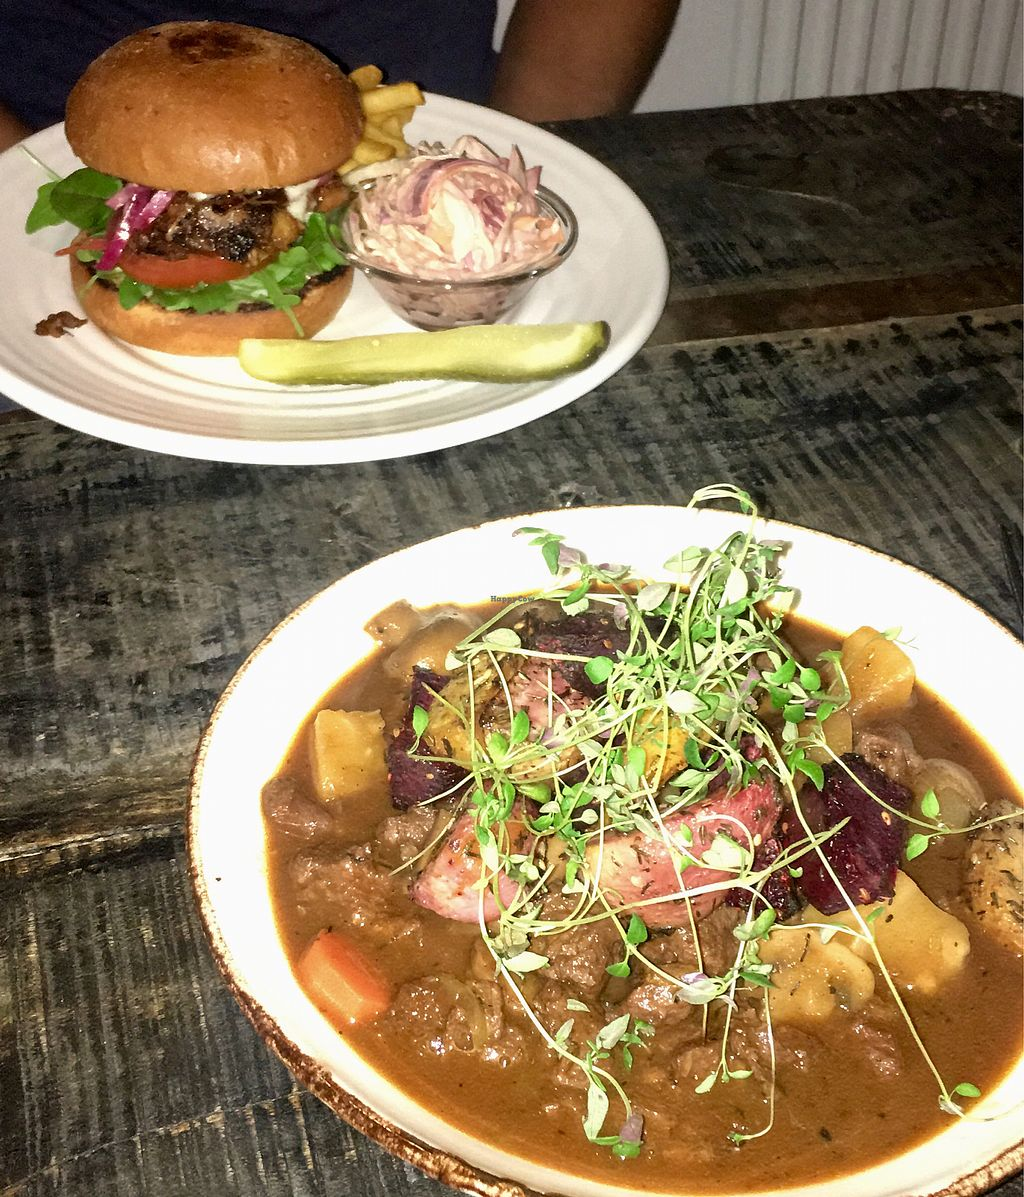 "Photo of Martens hus  by <a href=""/members/profile/DashaSushkevich"">DashaSushkevich</a> <br/>Vegan stew and jackfruit burger.  <br/> January 11, 2018  - <a href='/contact/abuse/image/109147/345582'>Report</a>"